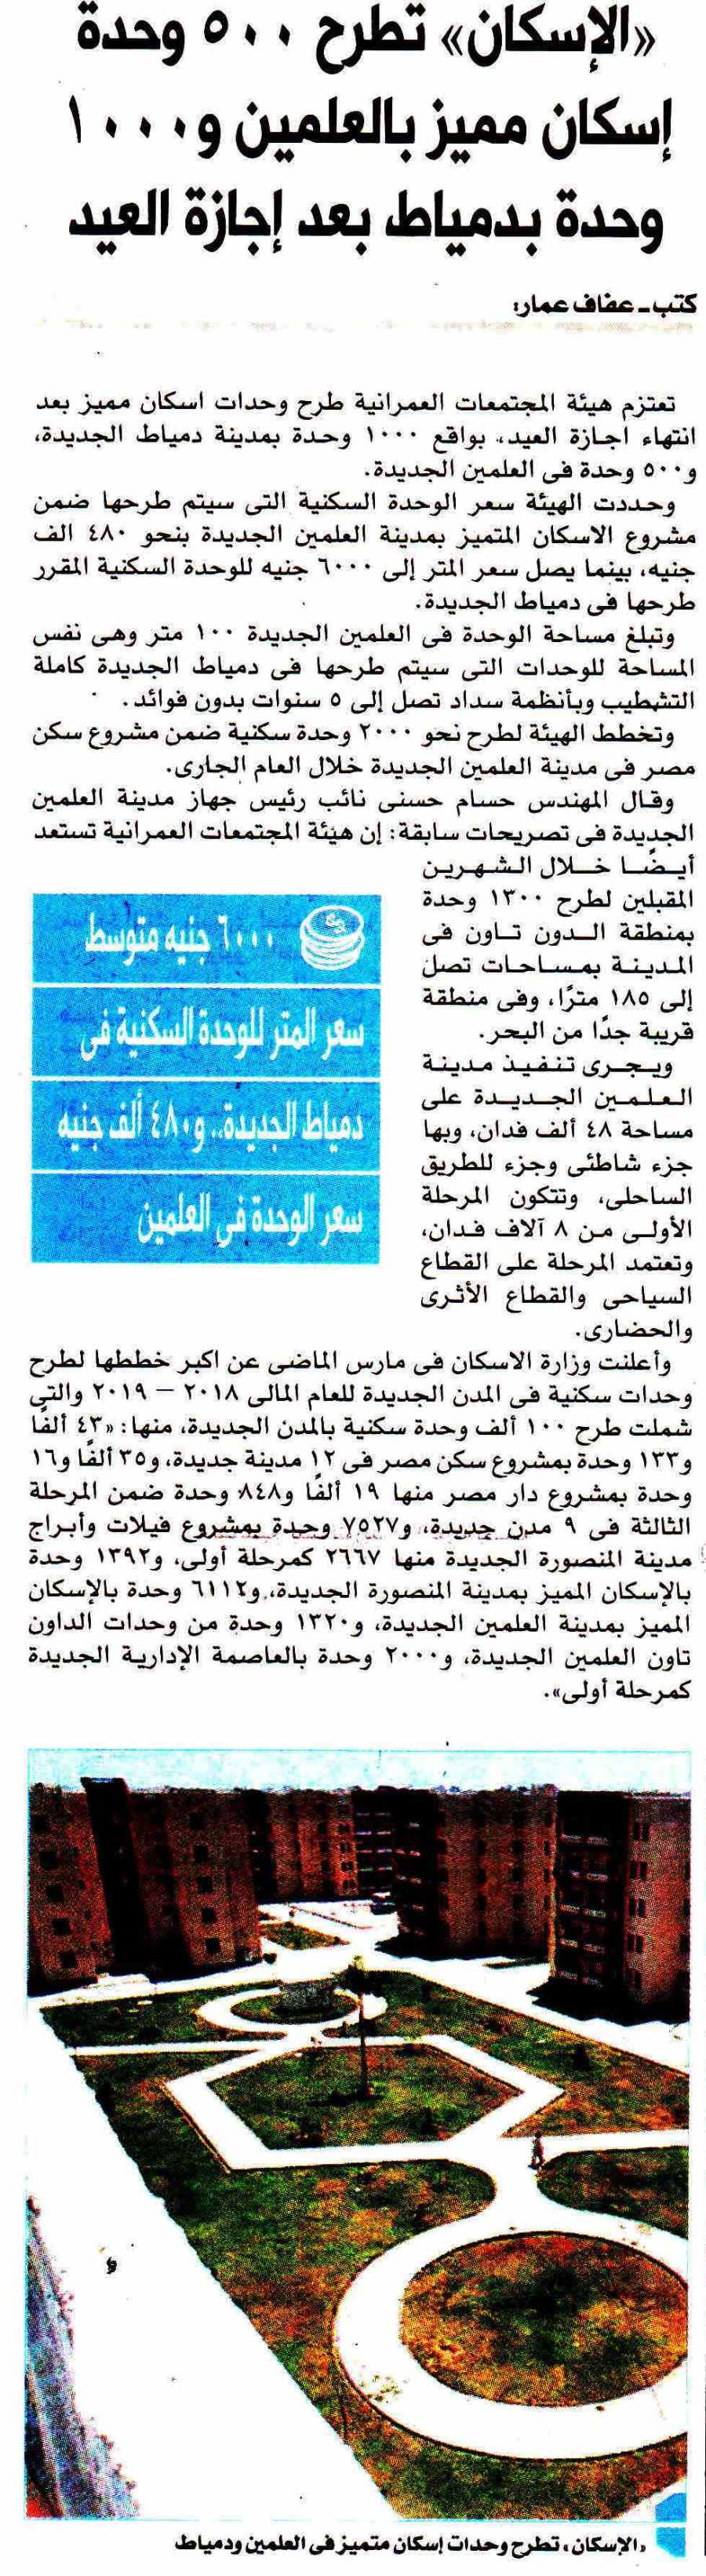 Al Shorouk (Sup) 19 Aug P.4 A.jpg